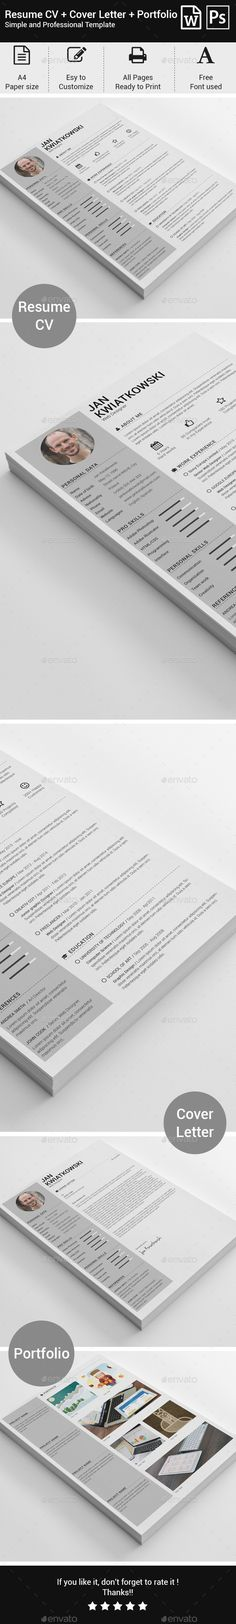 Resume Cv resume template, Resume cv and Font logo - buy resume templates